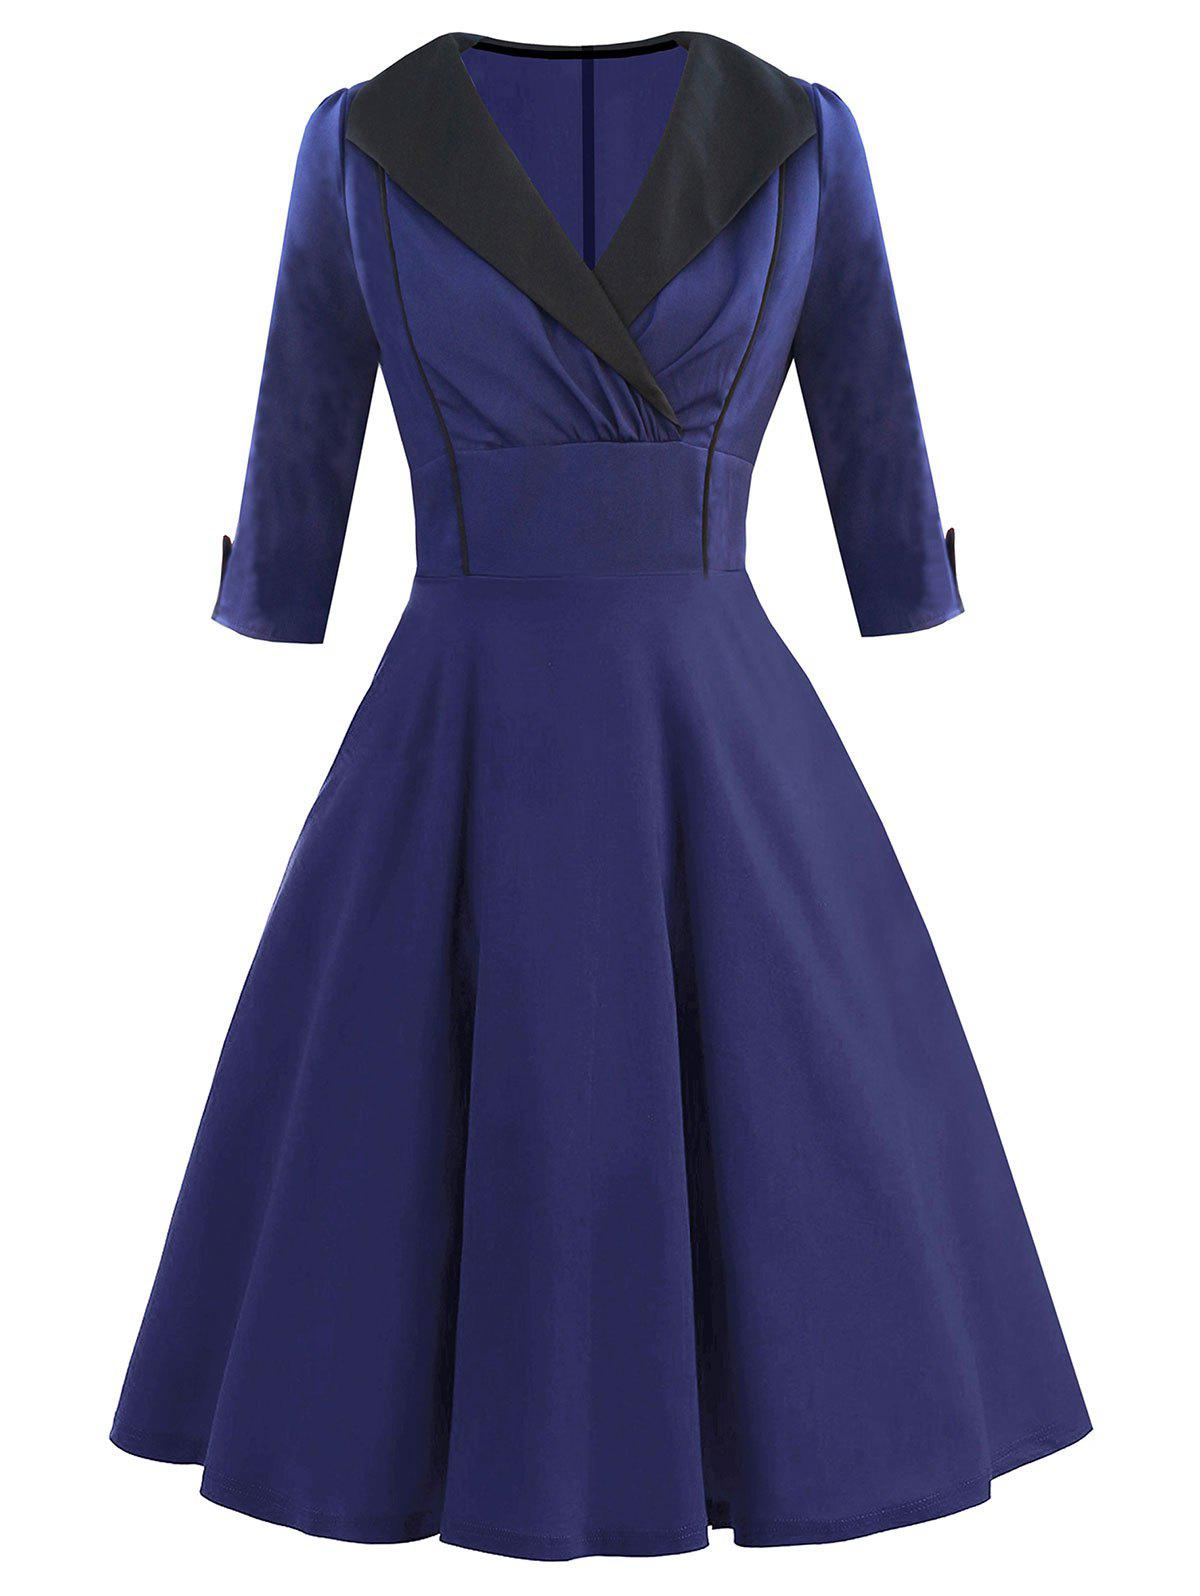 Retro Shawl Collar Pin Up Dress - DEEP BLUE L